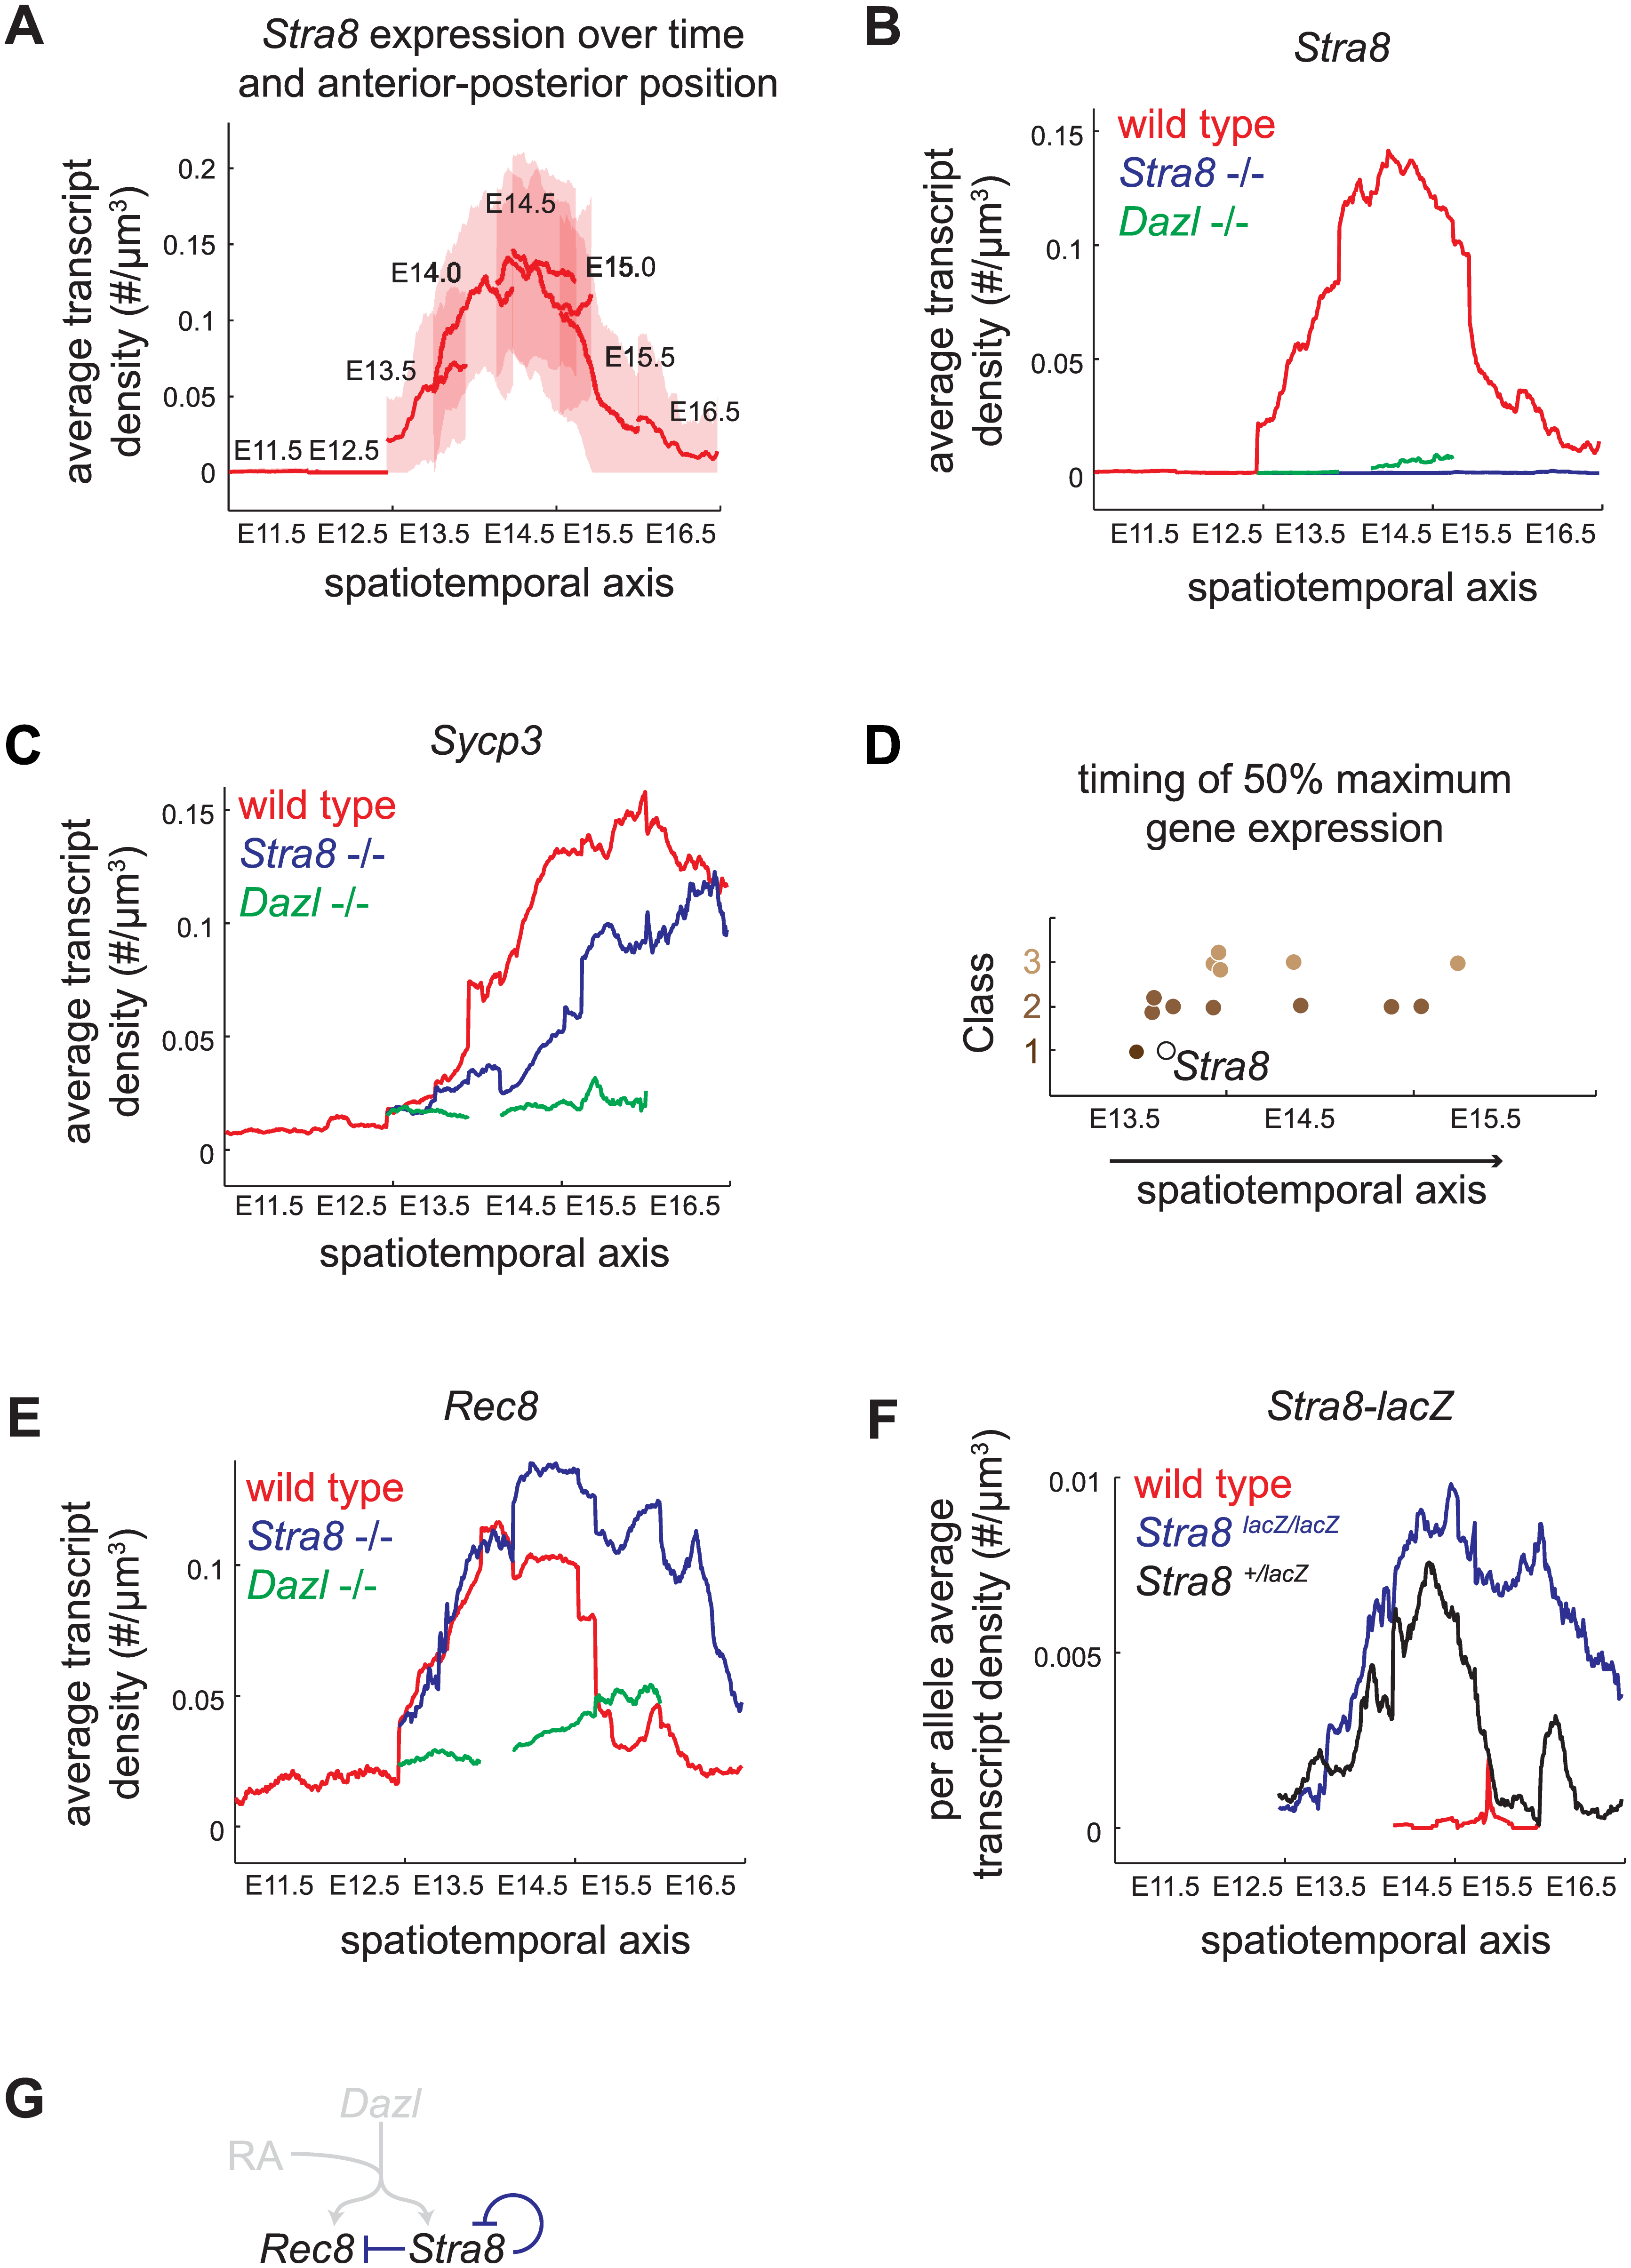 Spatiotemporal analysis demonstrates role of <i>Stra8</i>-independent pathway in inducing maximal and early gene expression, and identifies <i>Stra8</i>-dependent down-regulation of <i>Stra8</i> and <i>Rec8</i>.